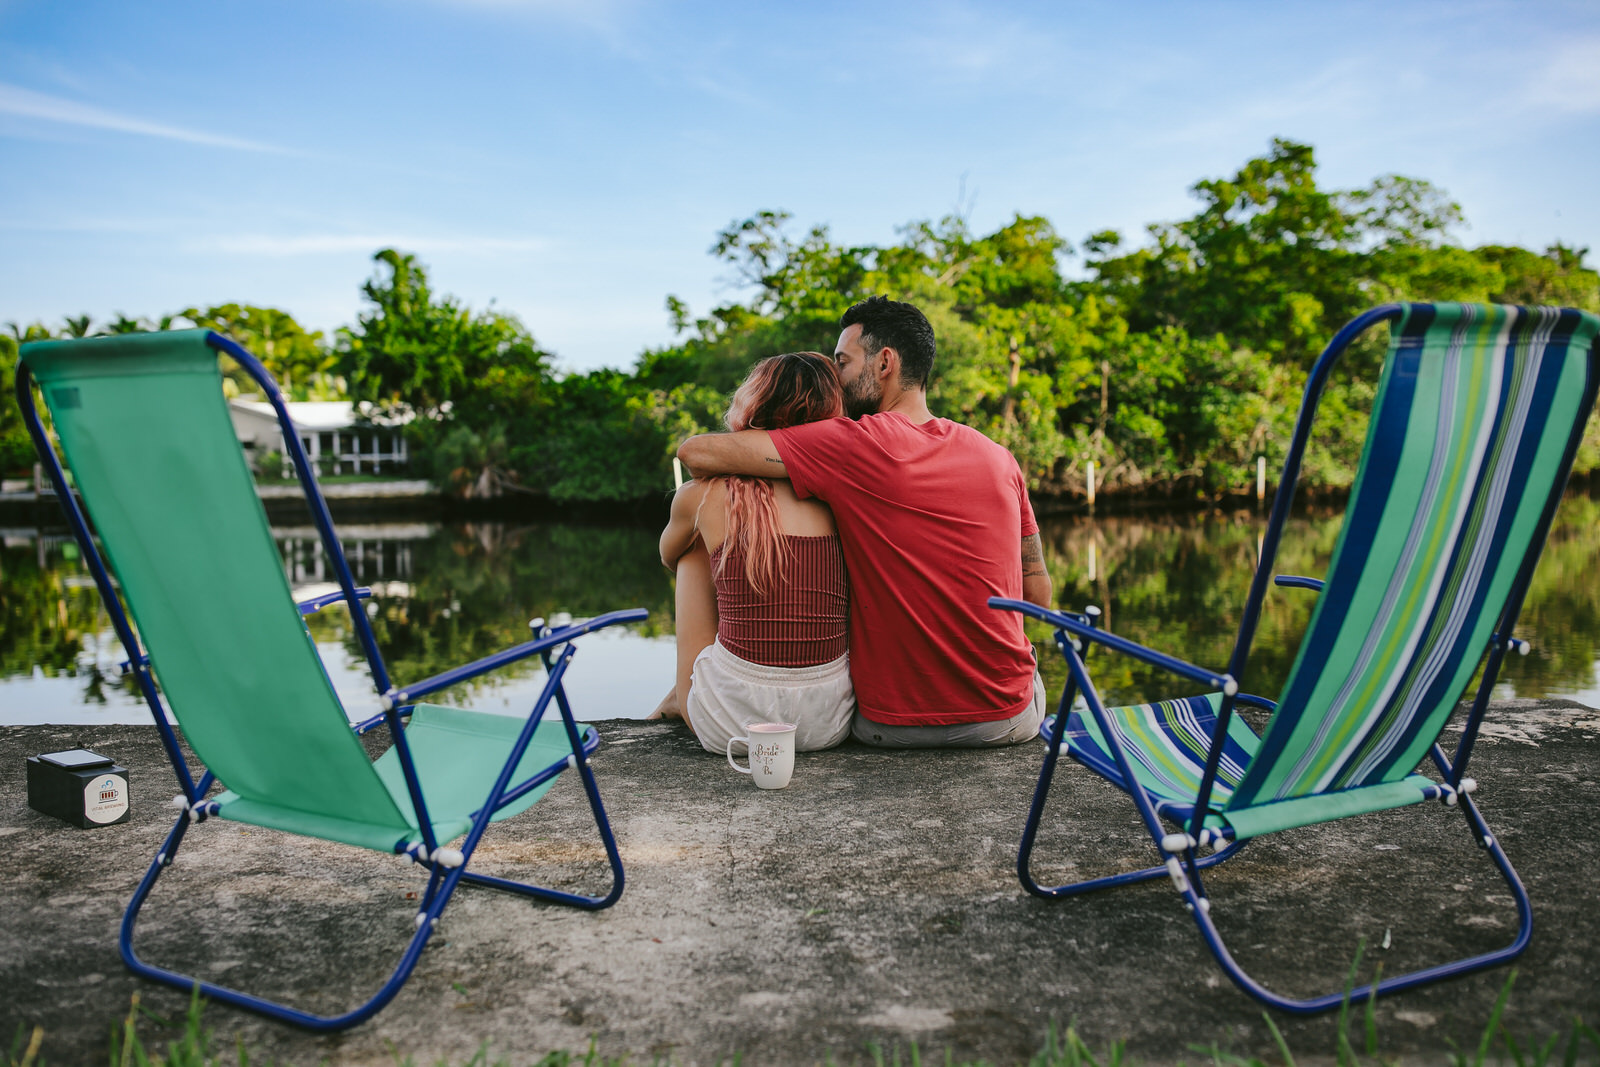 engagement-session-fort-lauderdale-day-in-the-life-tiny-house-photo-canal-morning-hangs-1.jpg